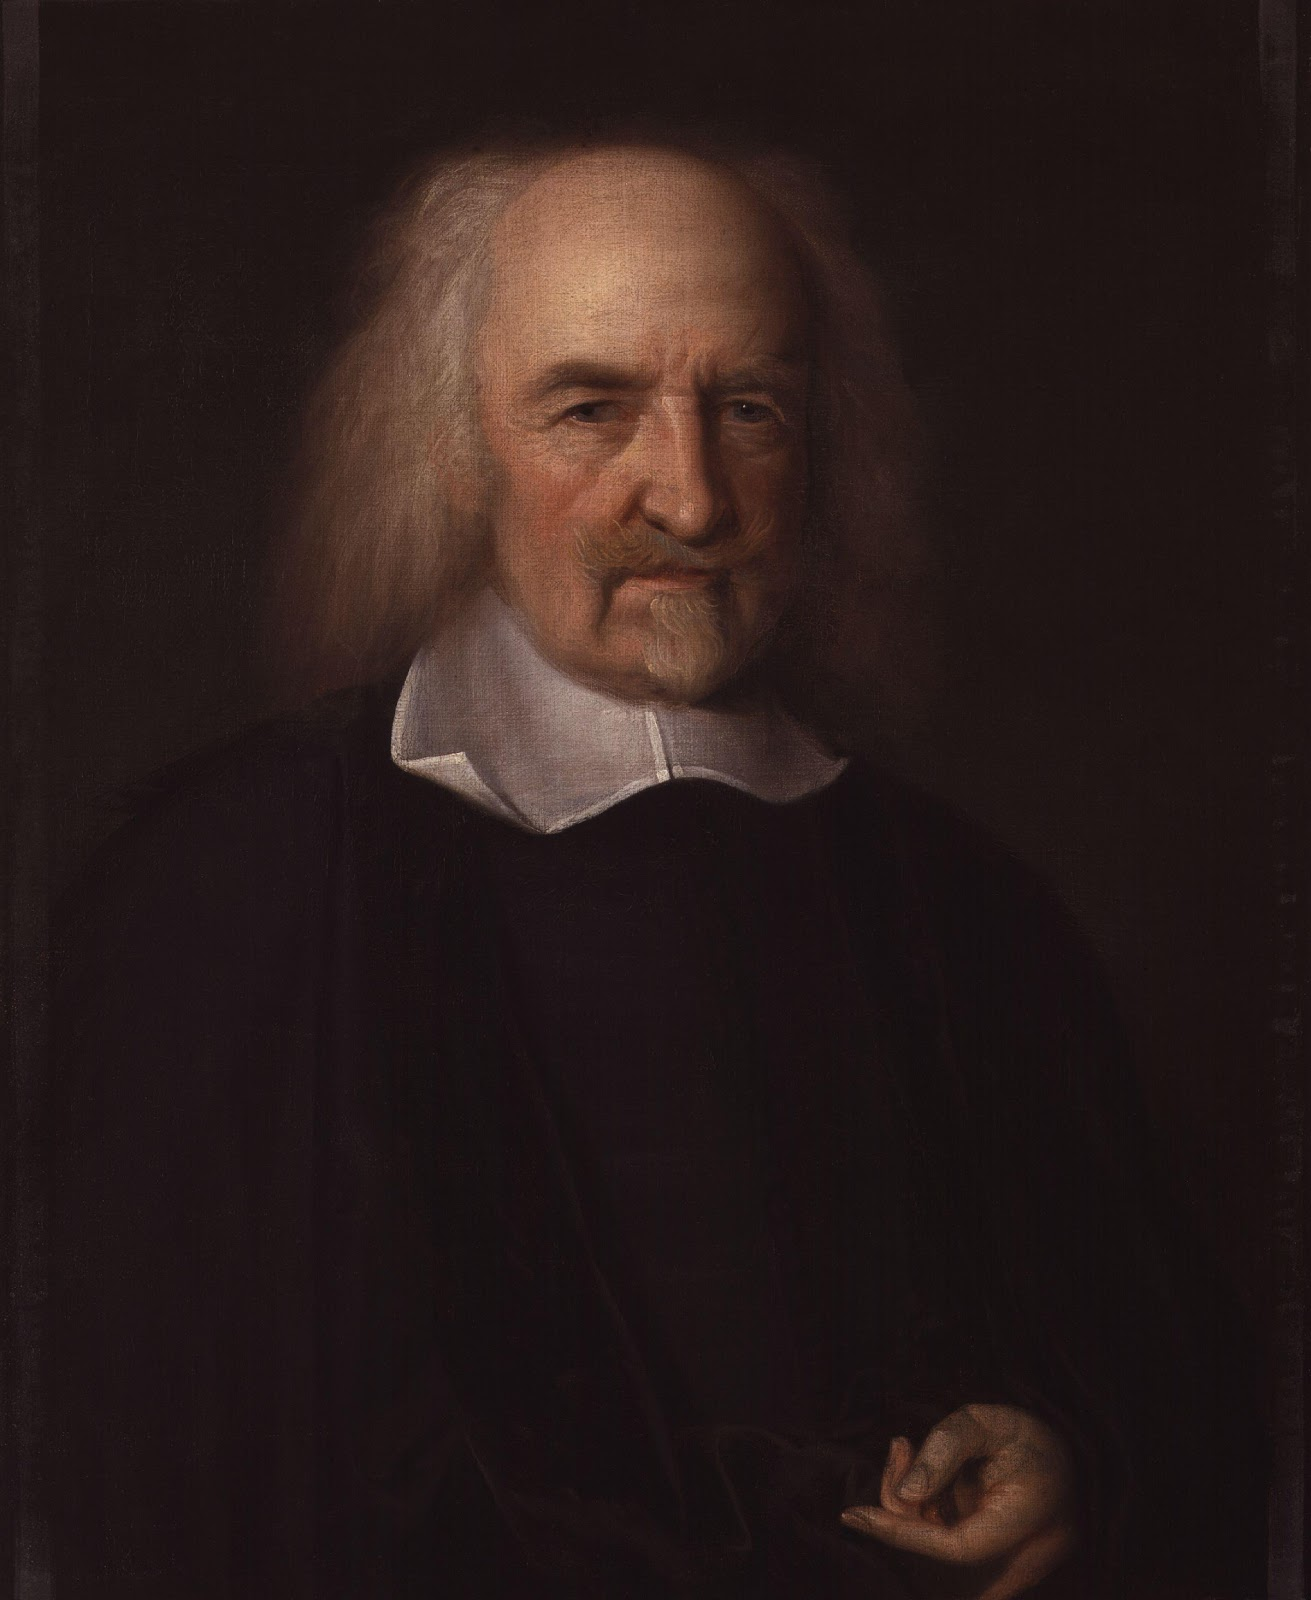 thomas hobbes and democracy Thomas hobbes was an english philosopher who was born april 5,1588 and died december 4,1679 he attended oxford university where he studied classics he was a tutor by profession and also traveled around europe to meet scientists and to study different forms of government.